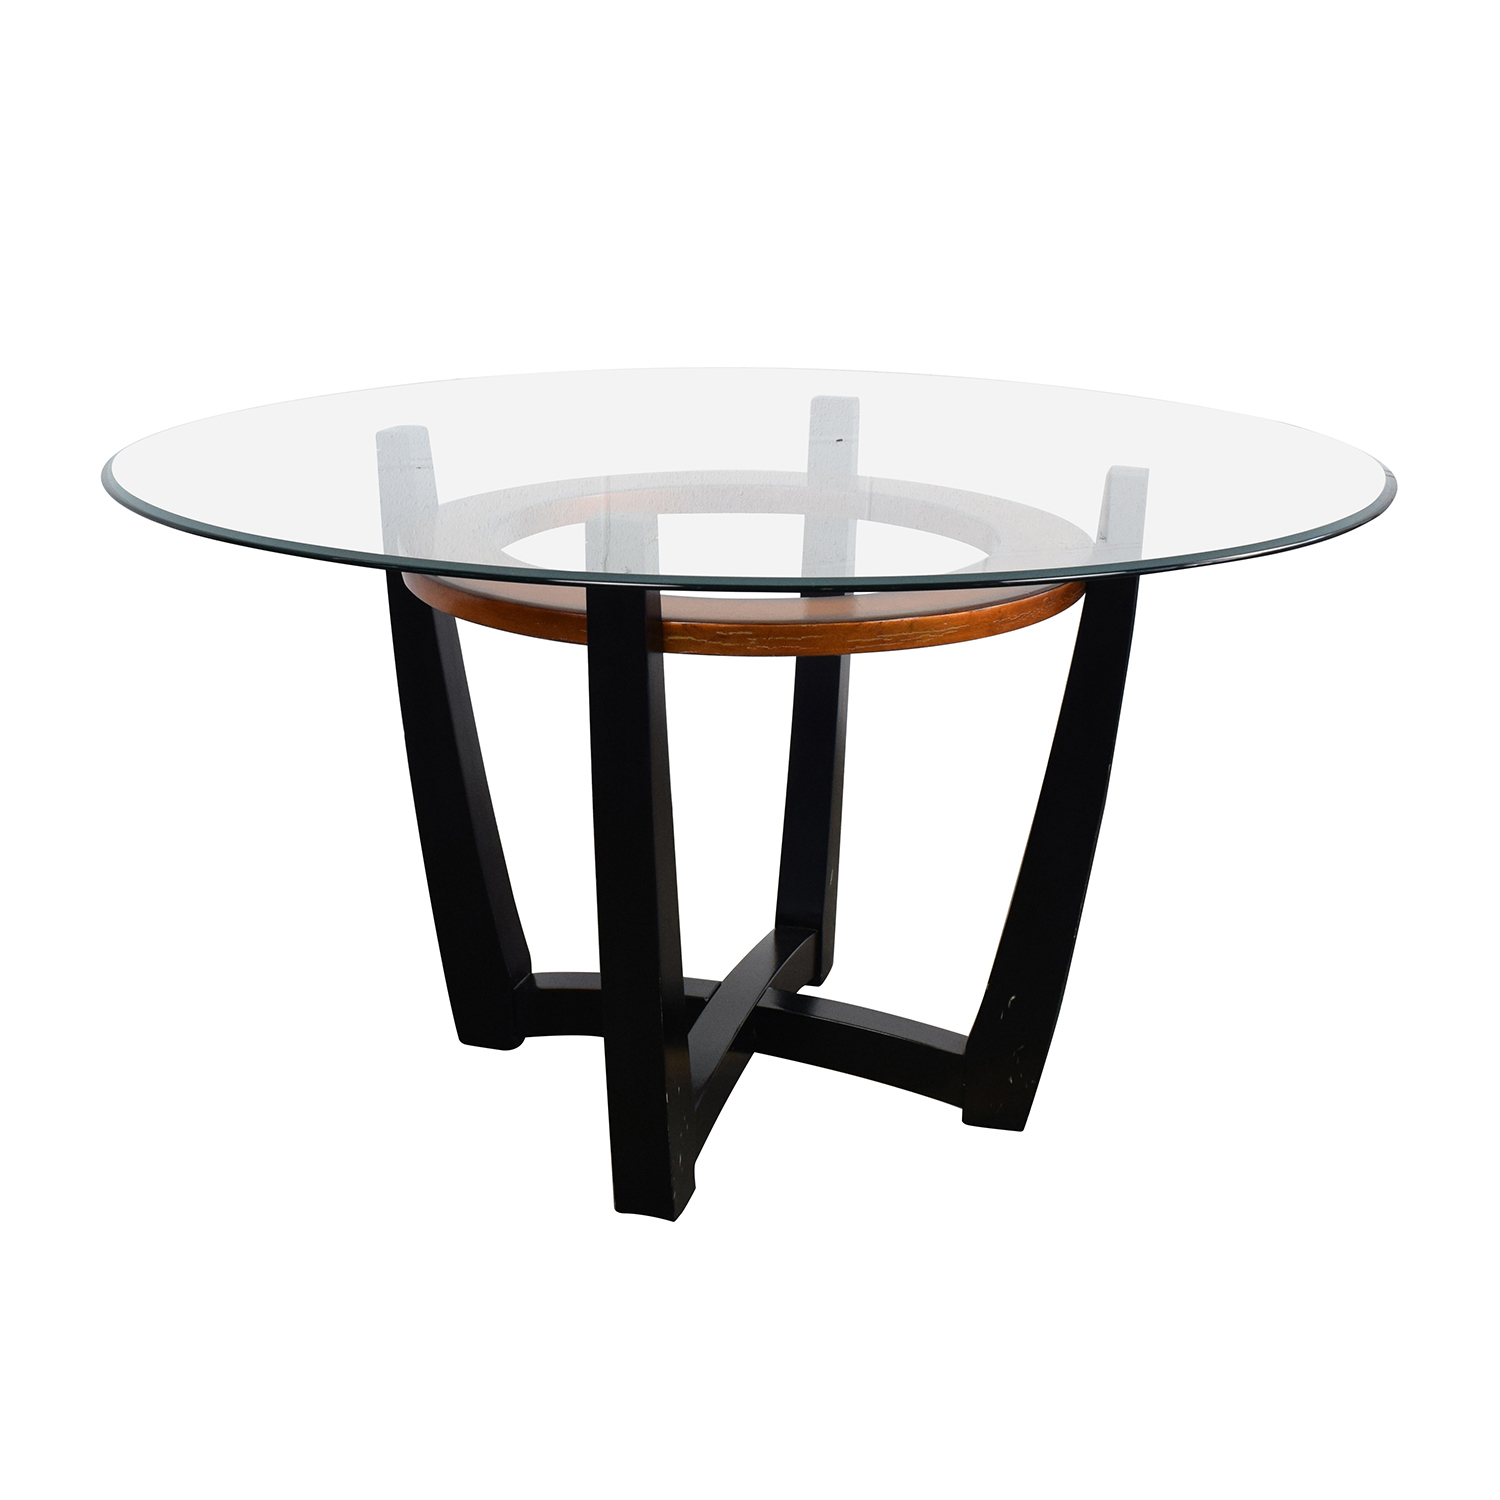 88 Off Macy 39 S Macy 39 S Elation Round Glass Dining Table Tables